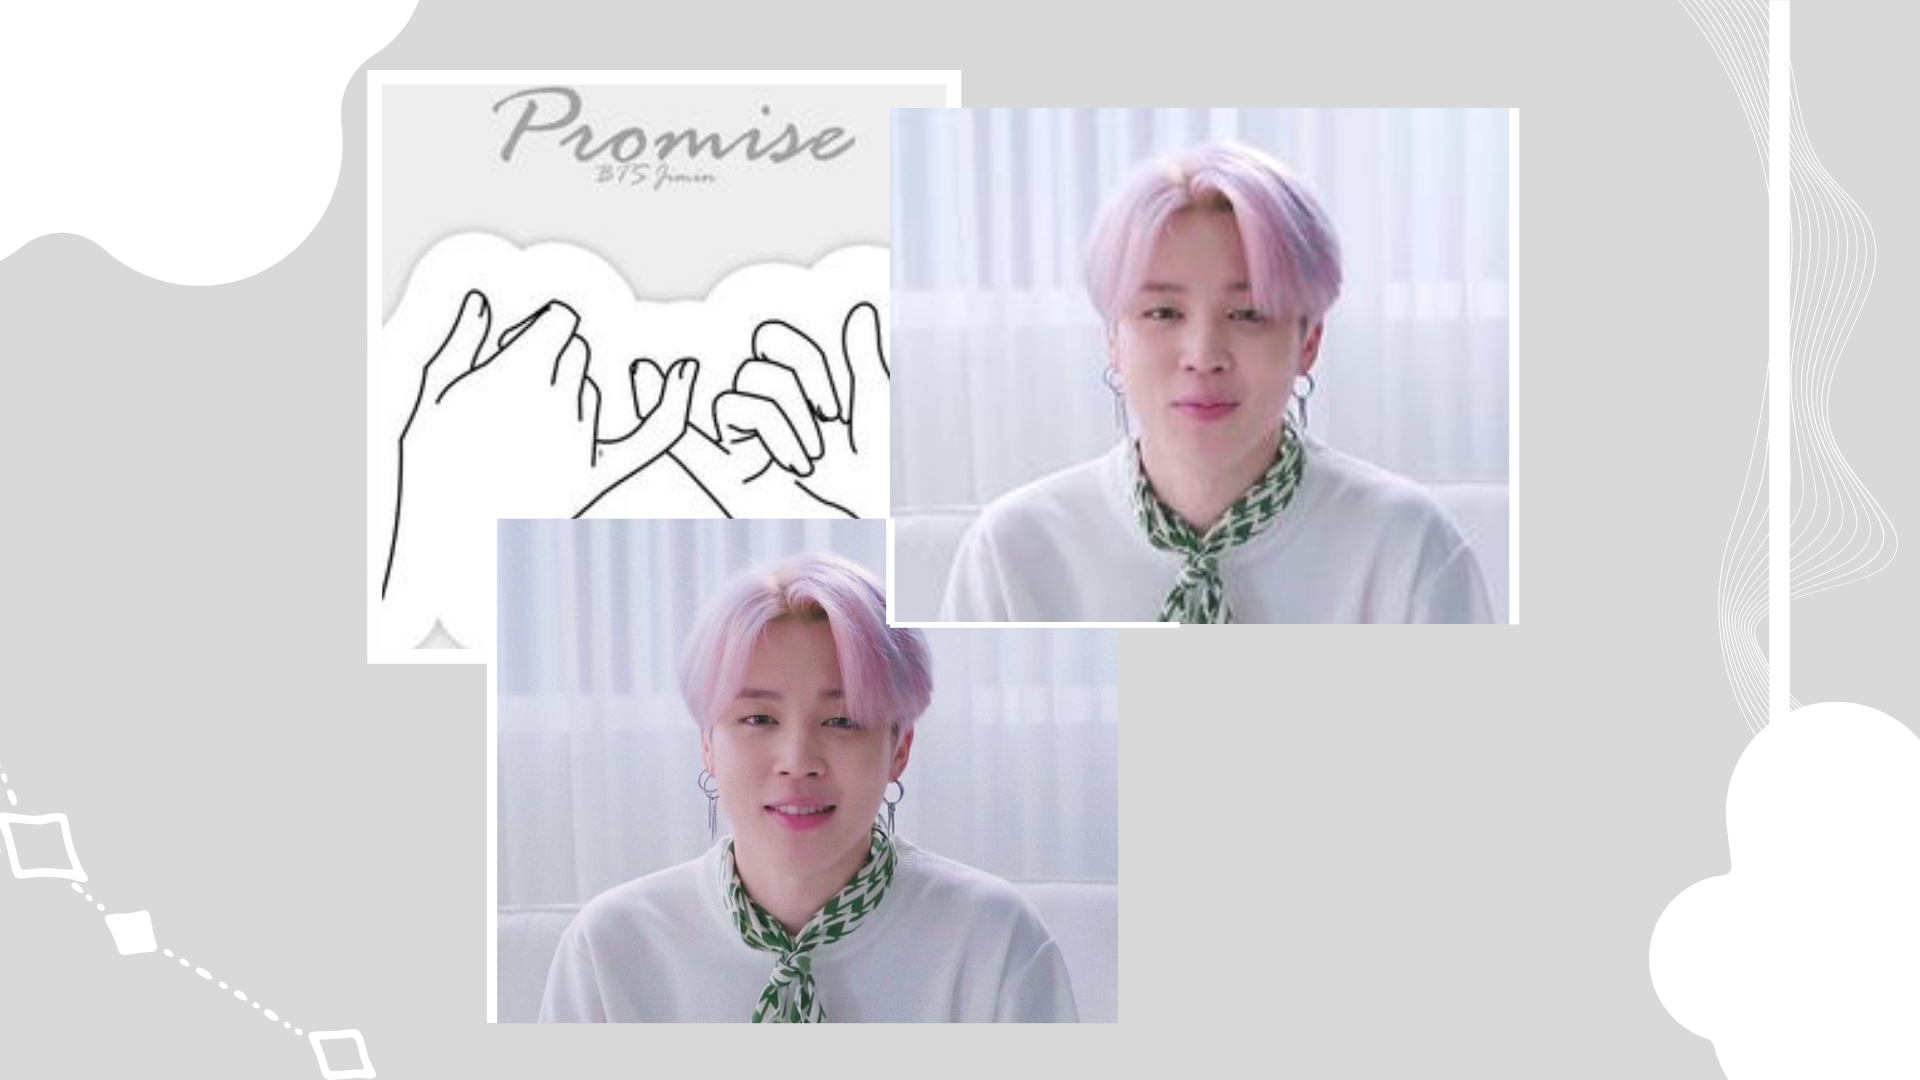 Park Jimin Edit 1 In 2020 Desktop Wallpaper Motivational Aesthetic Desktop Wallpaper Jimin Wallpaper